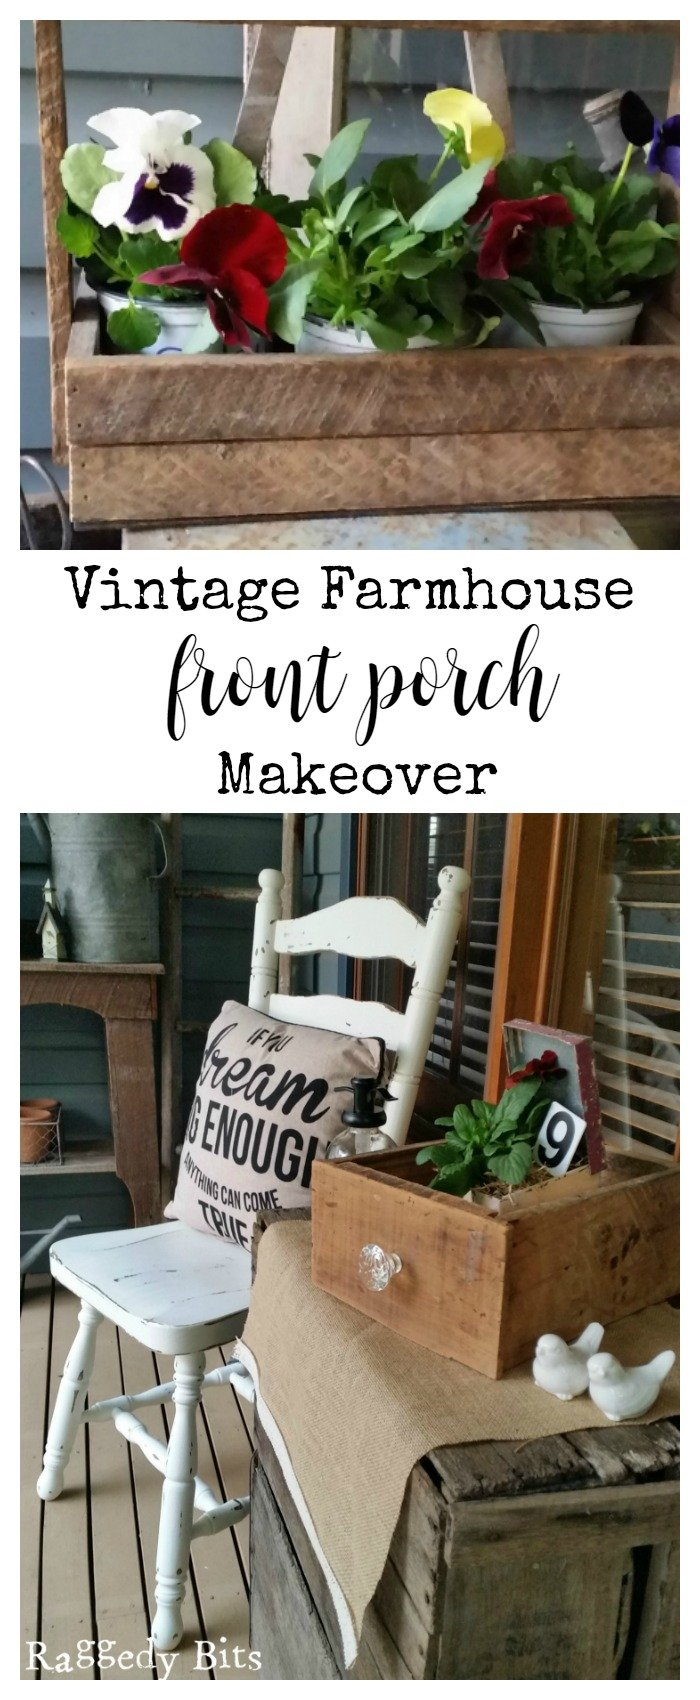 Sharing how I used lots of repurposed goodies for our Vintage Farmhouse Front Porch Makeover | www.raggedy-bits.com